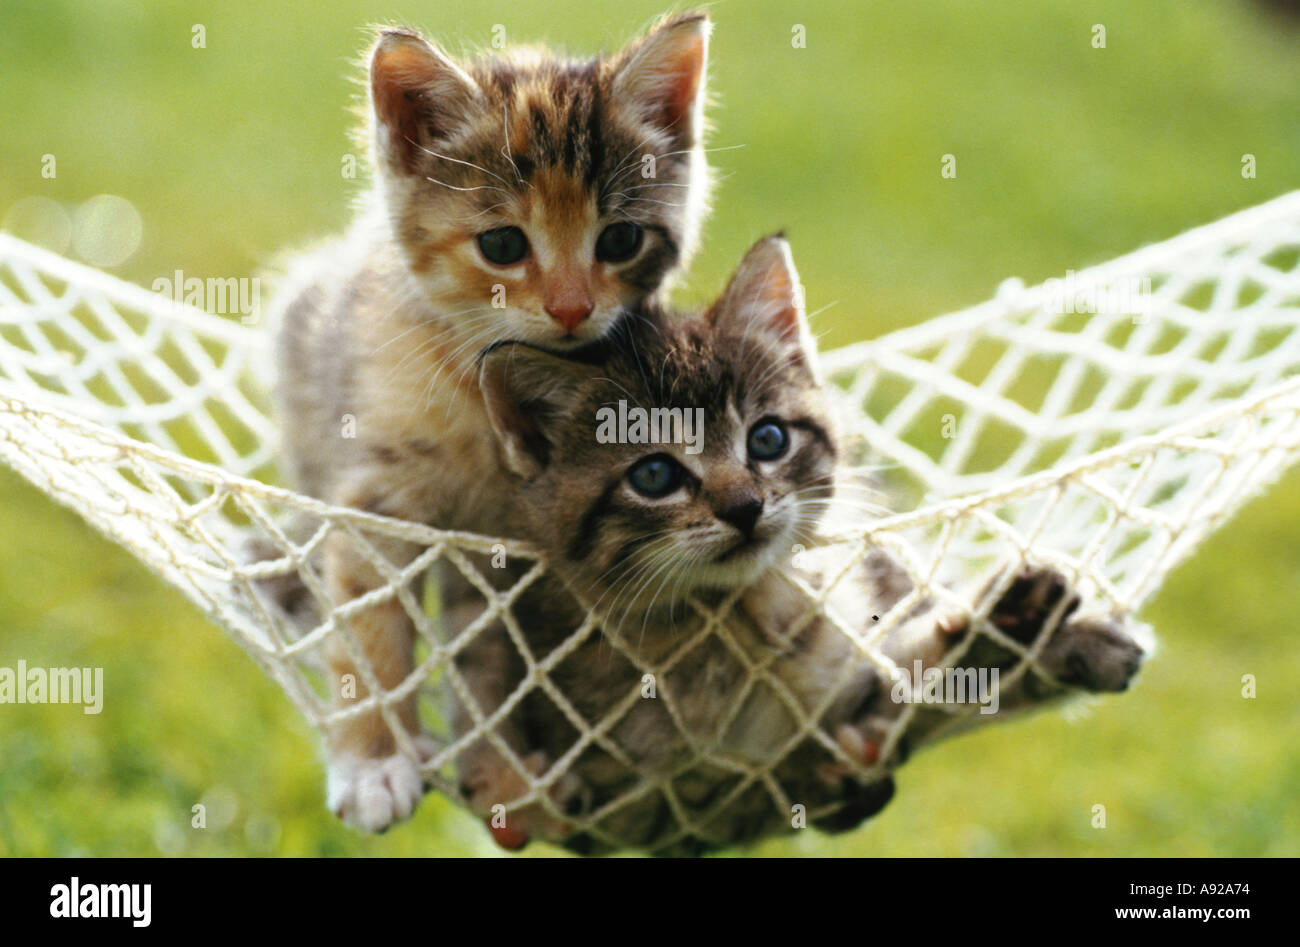 two young cats in a hammock - Stock Image